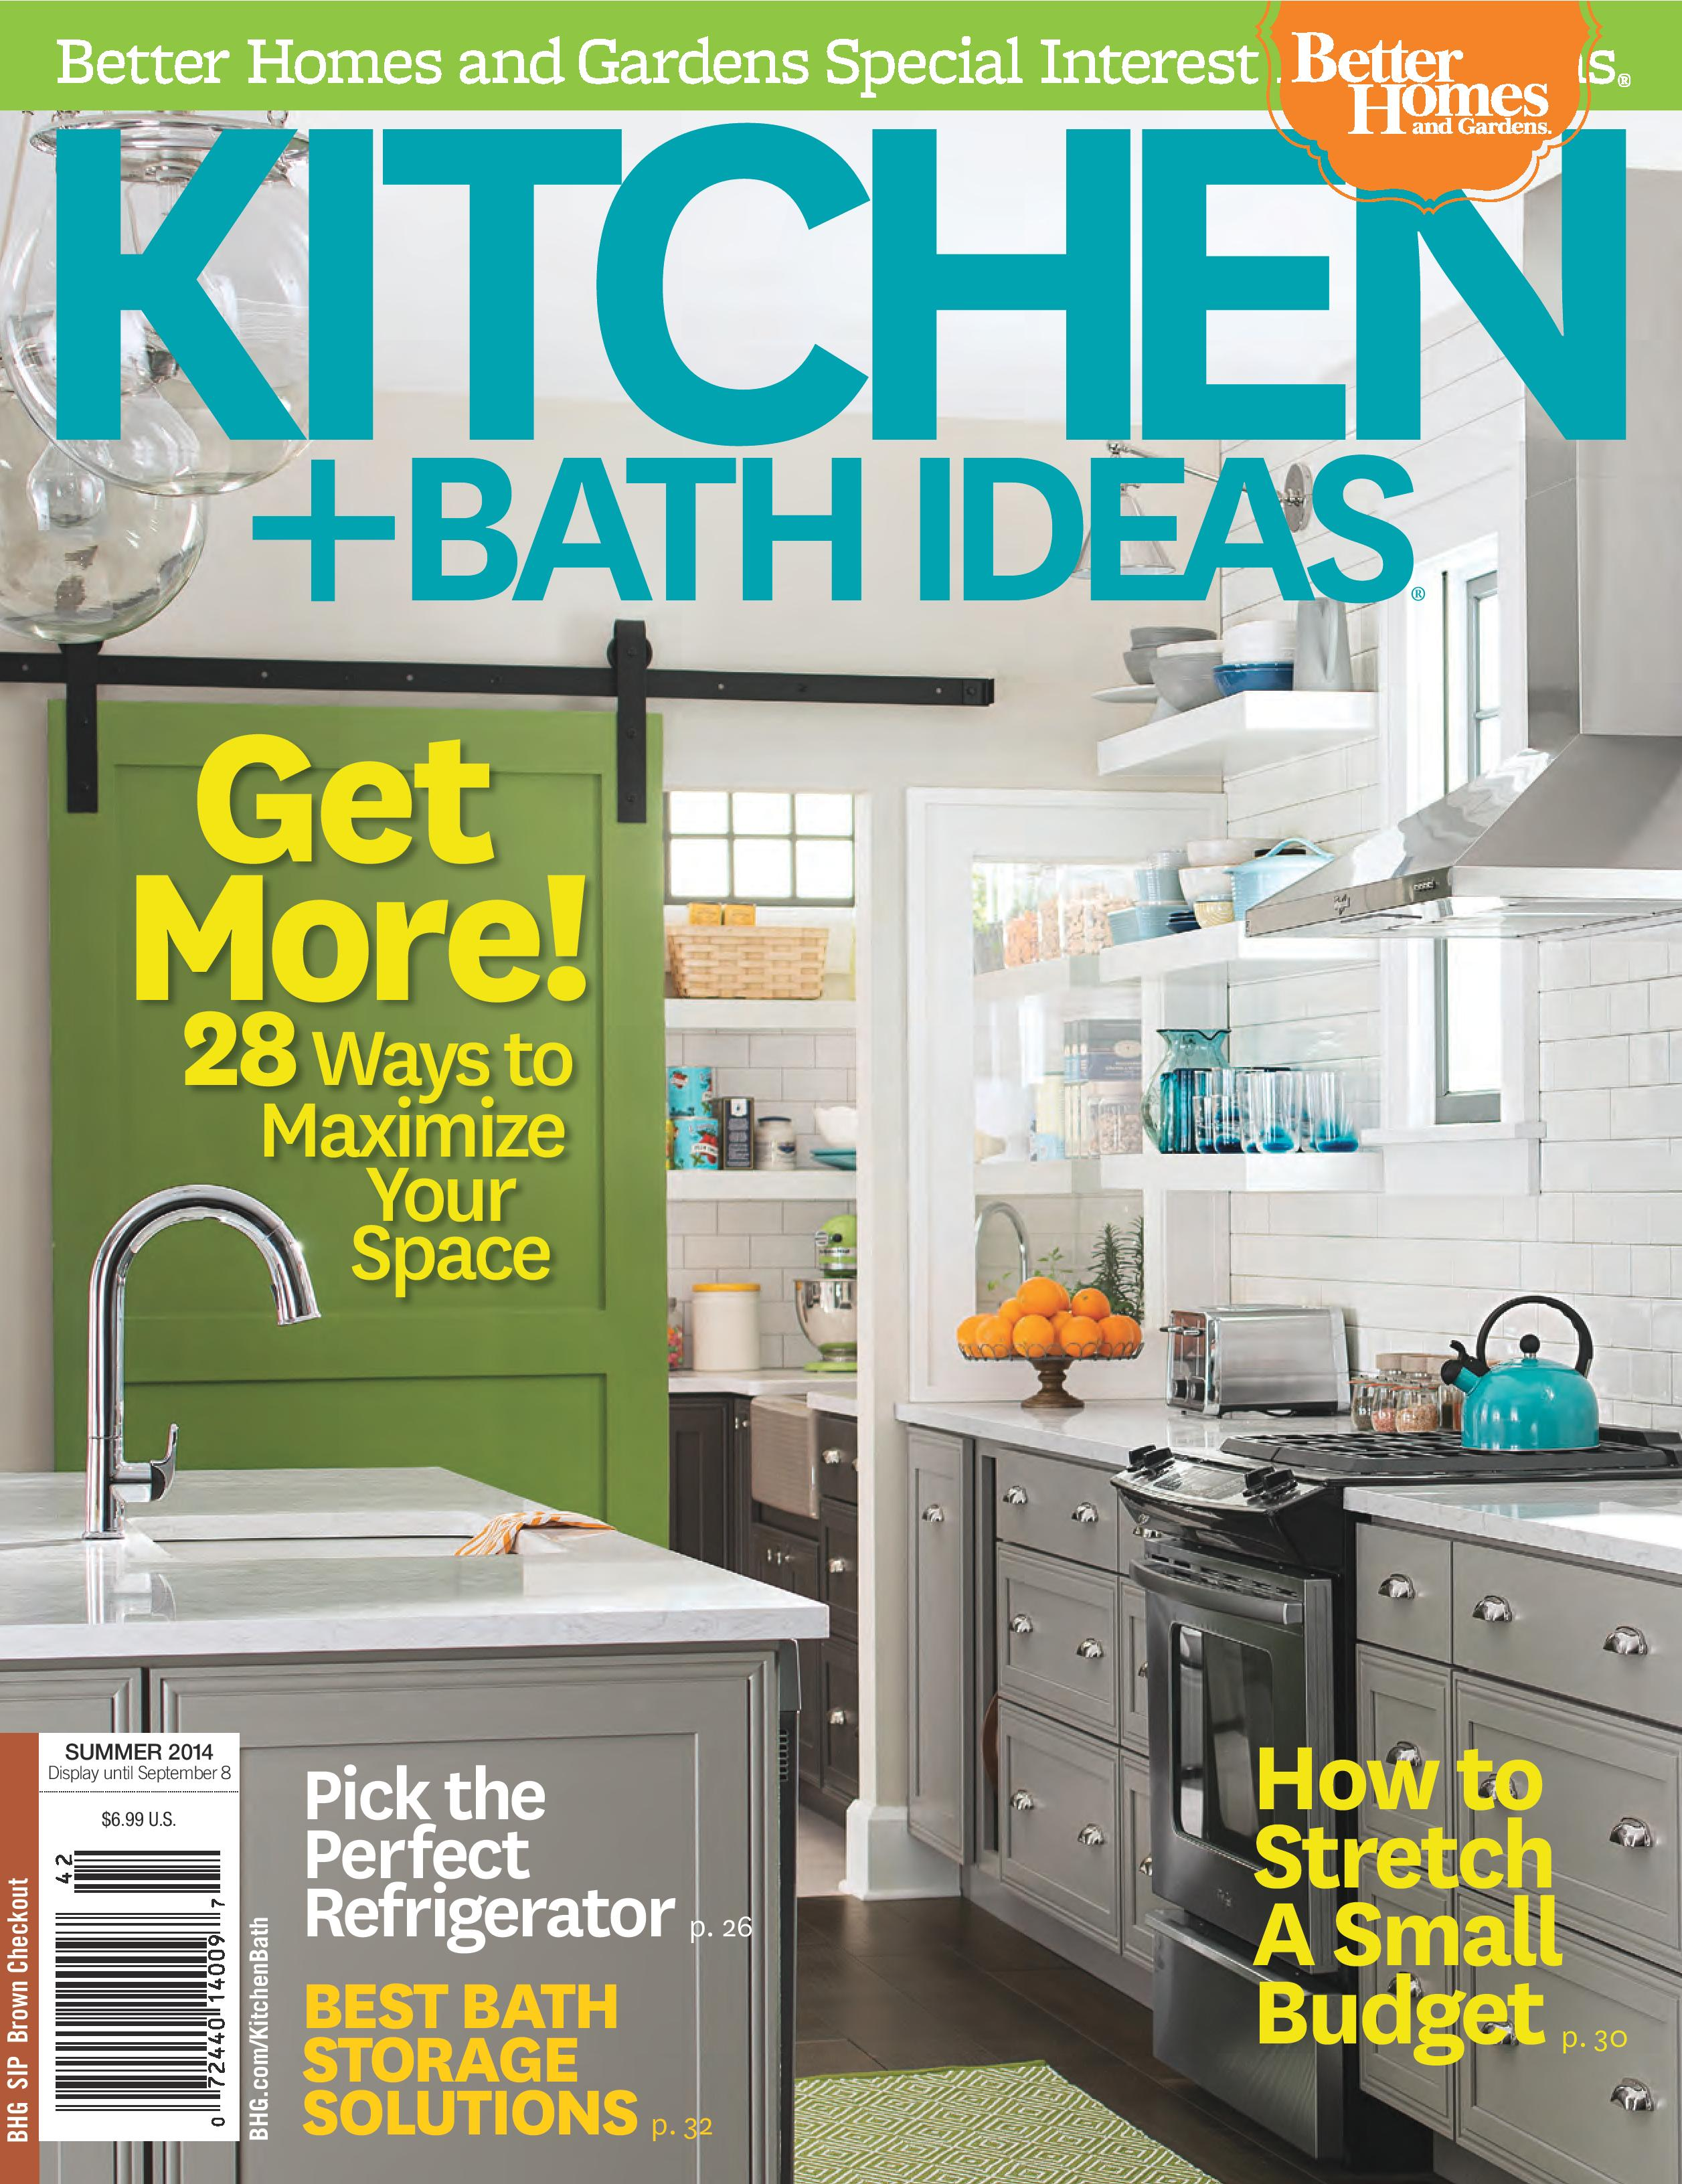 Kitchen bath ideas summer 2014 fiorella design for Kitchen ideas magazine